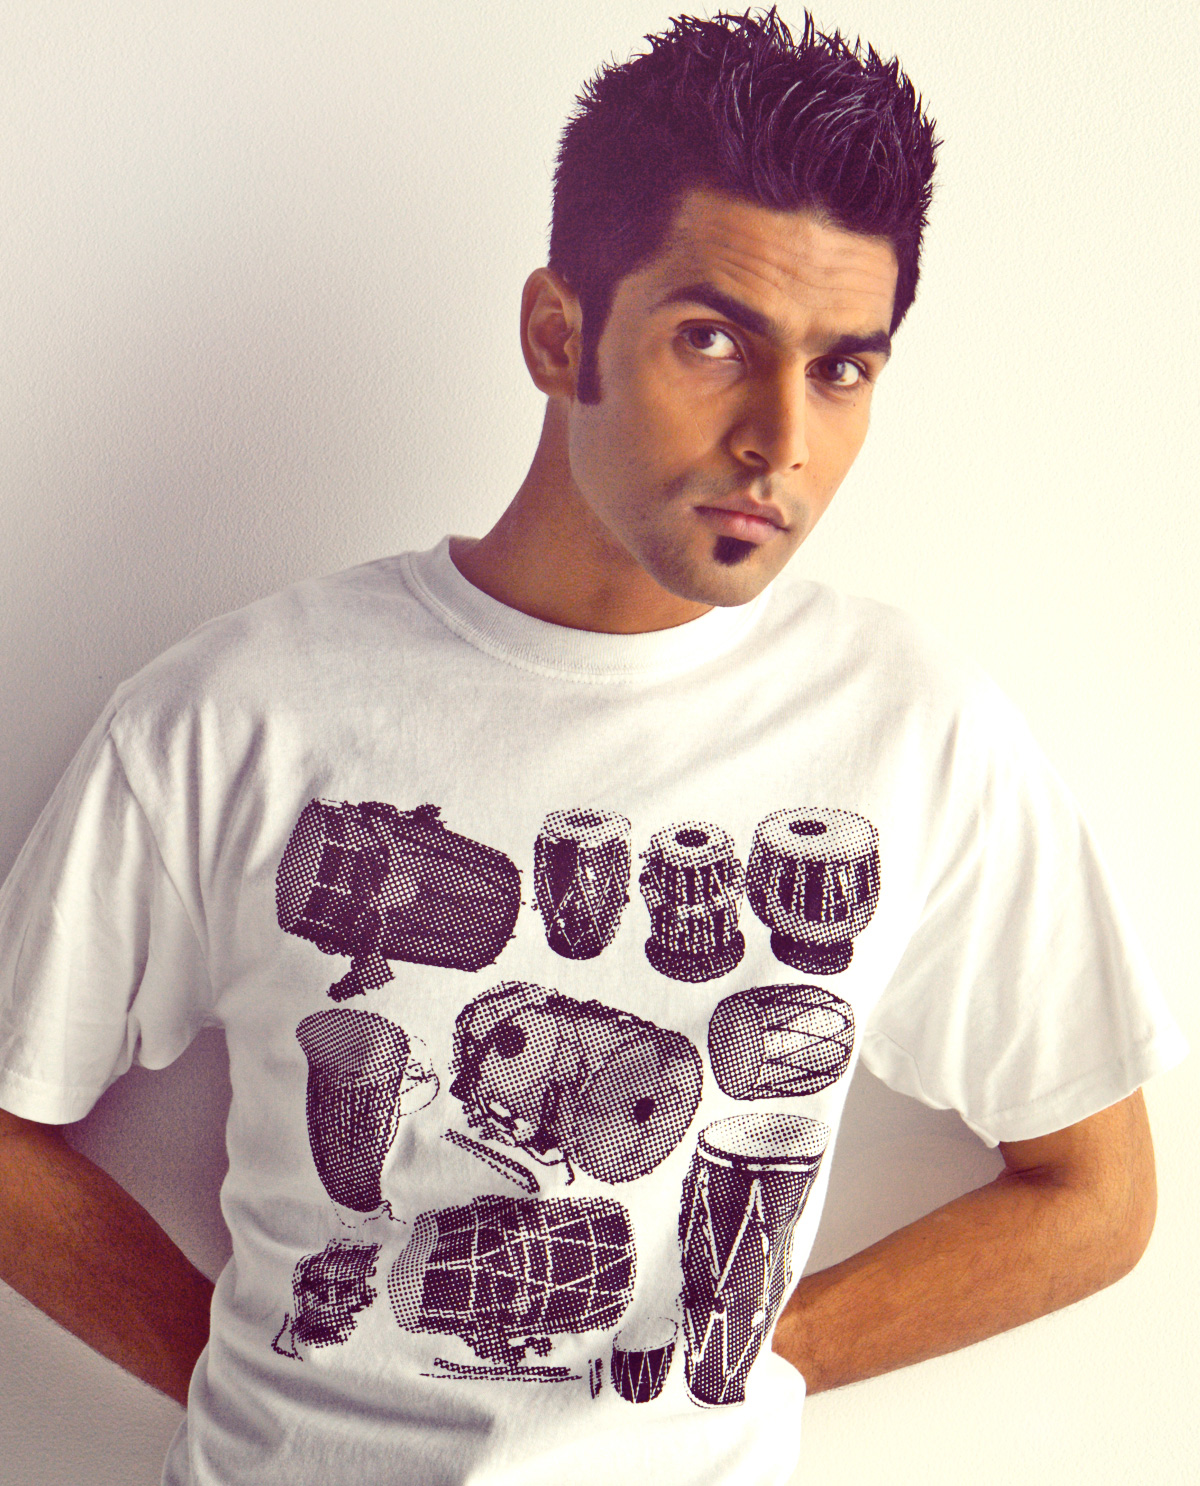 South Asian Male modeal wearing Vintage Dhol halftone ultra cotton t.shirt.